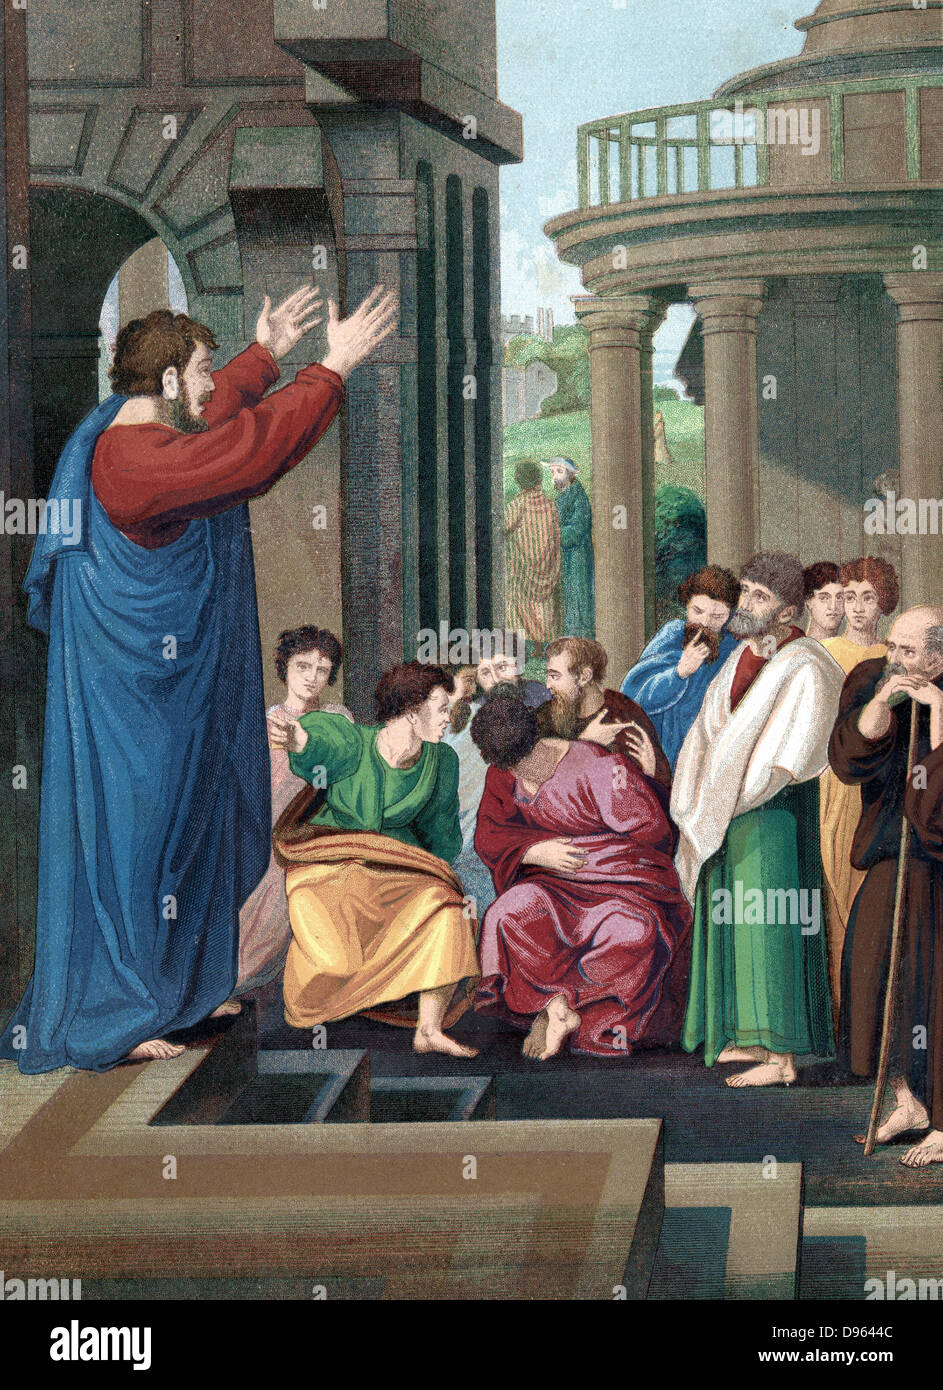 St Paul the Apostle preaching to the Athenians.  'Bible' Acts. Chromolithograph c1860. Colour. - Stock Image